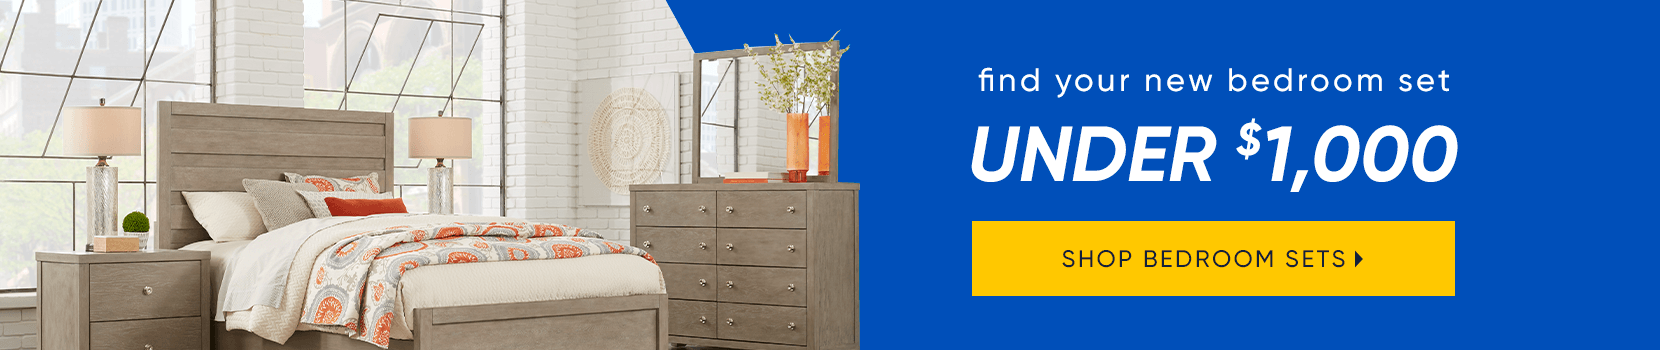 find your new bedroom set under $1000. shop bedroom sets